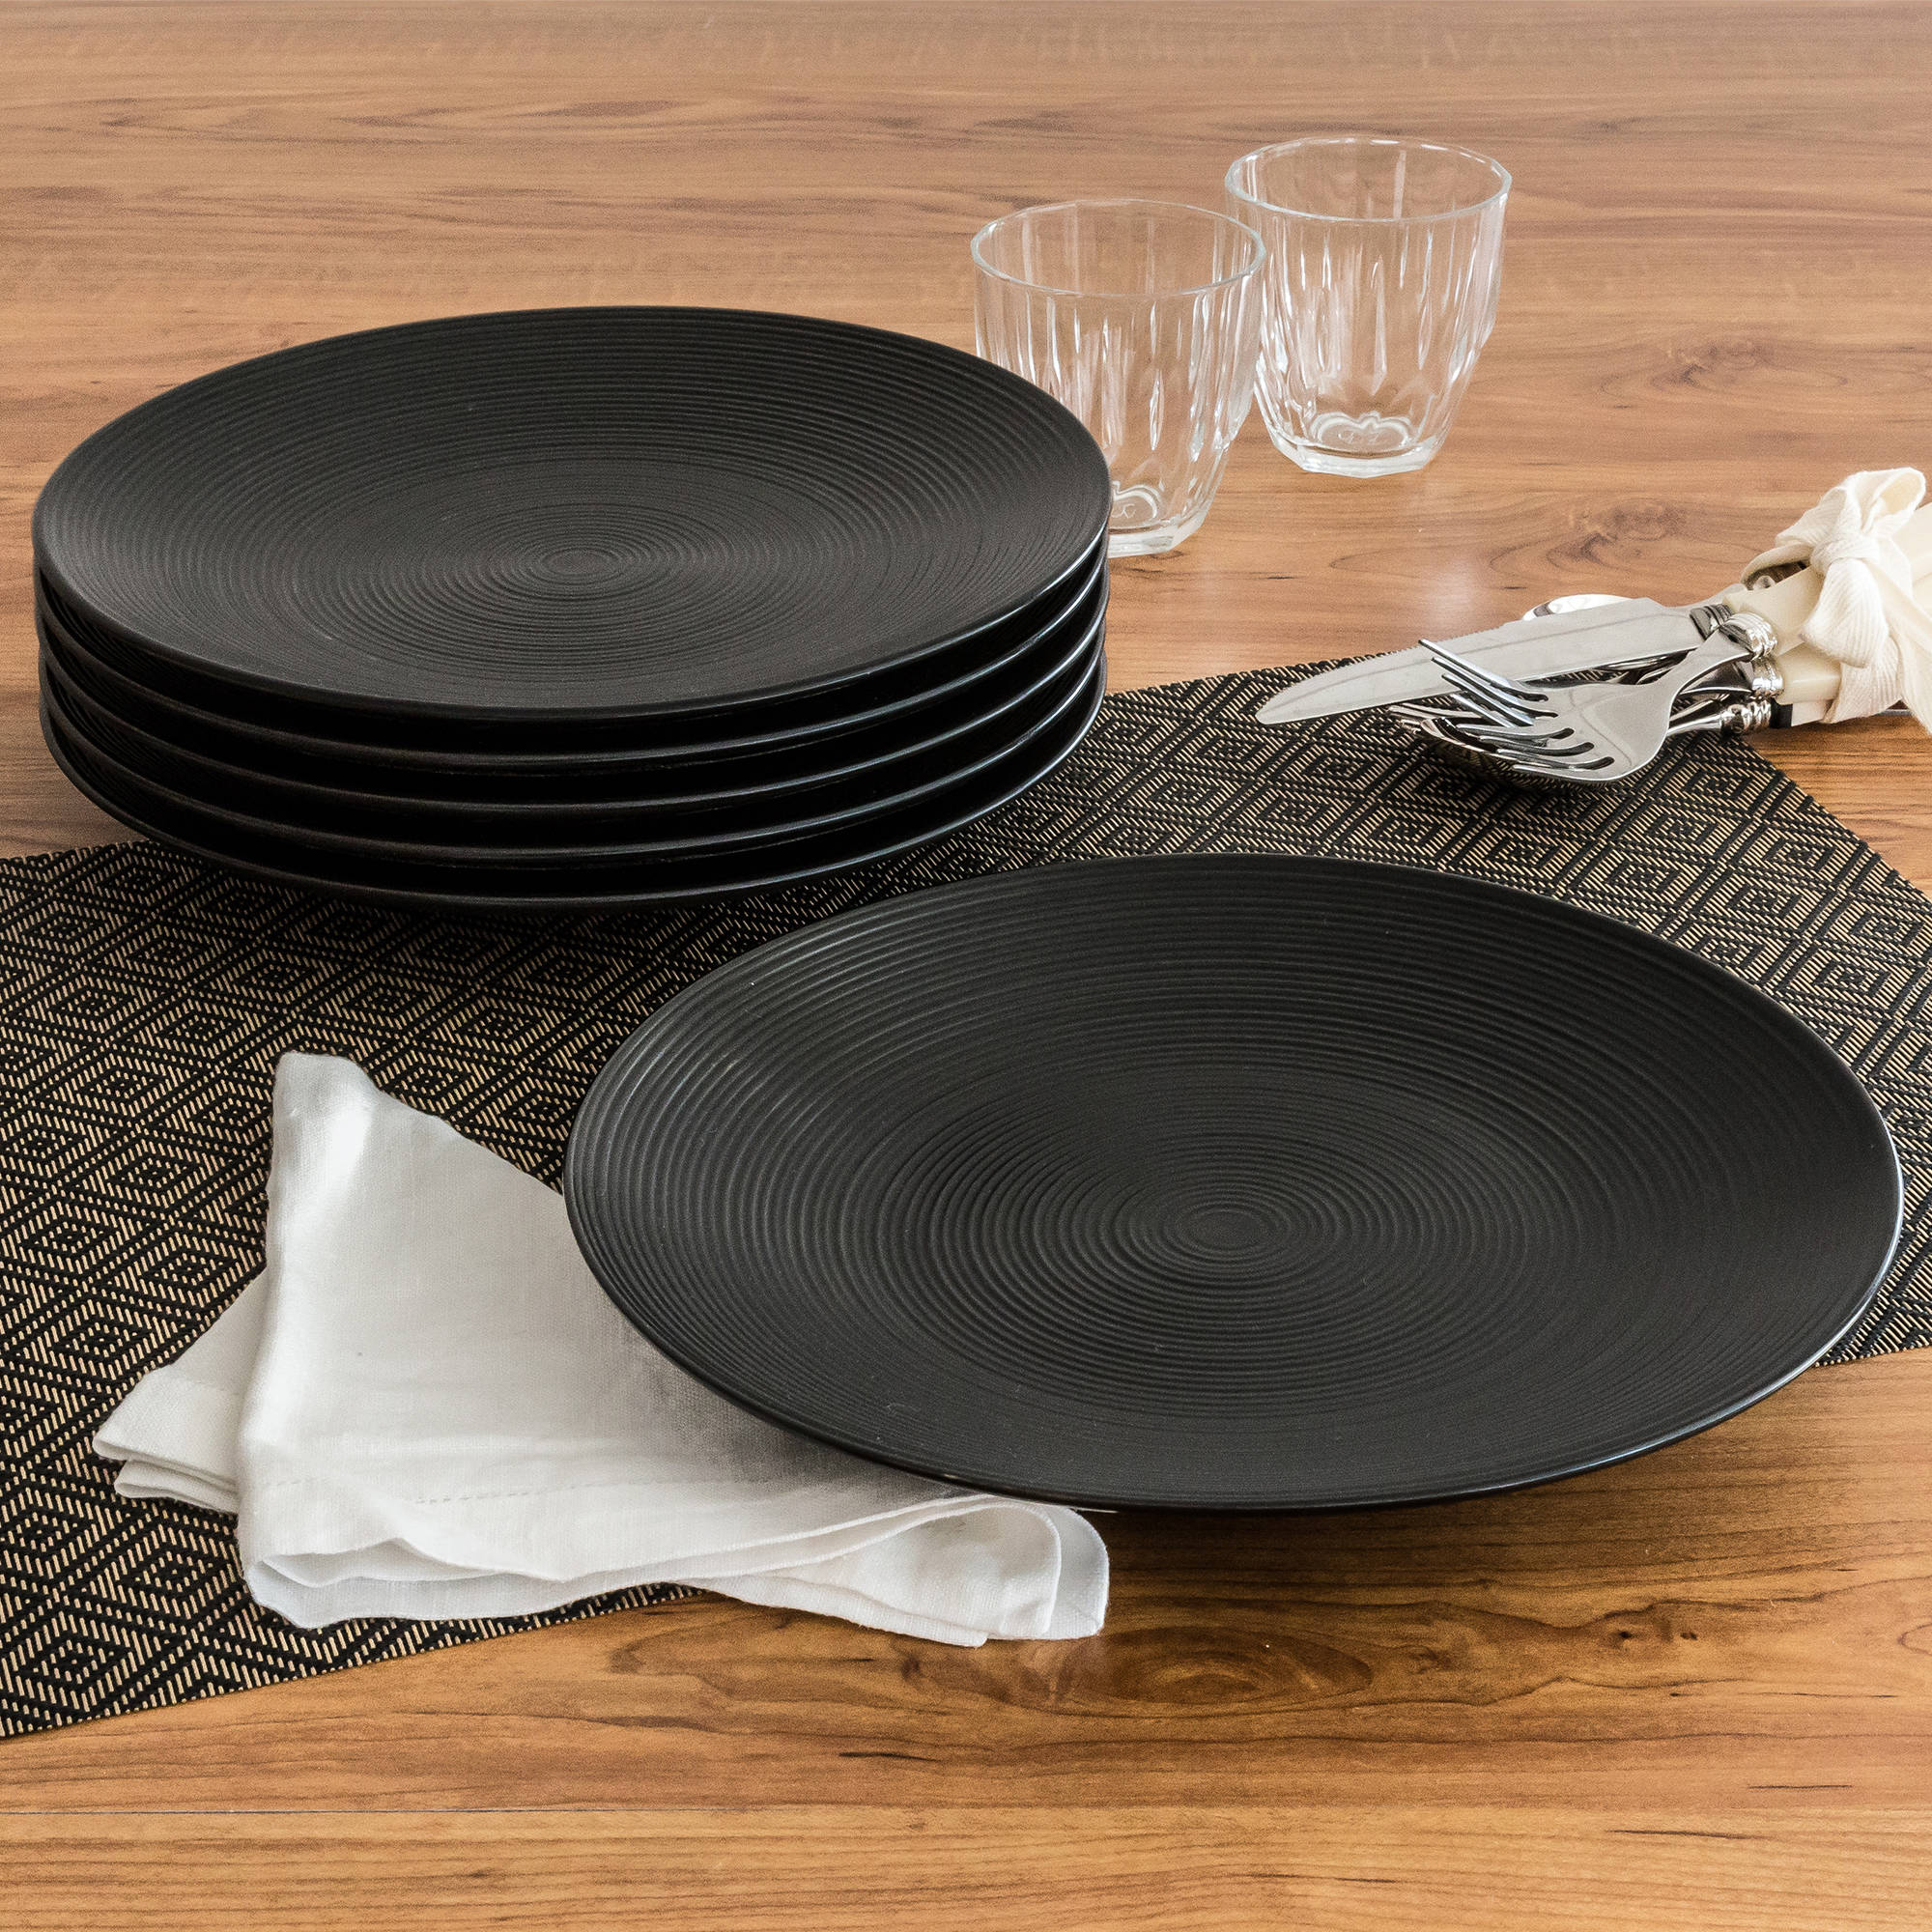 Better Homes and Gardens Matte Swirl Dinner Plates Black Set of 6 - Walmart.com : matte black dinnerware - pezcame.com